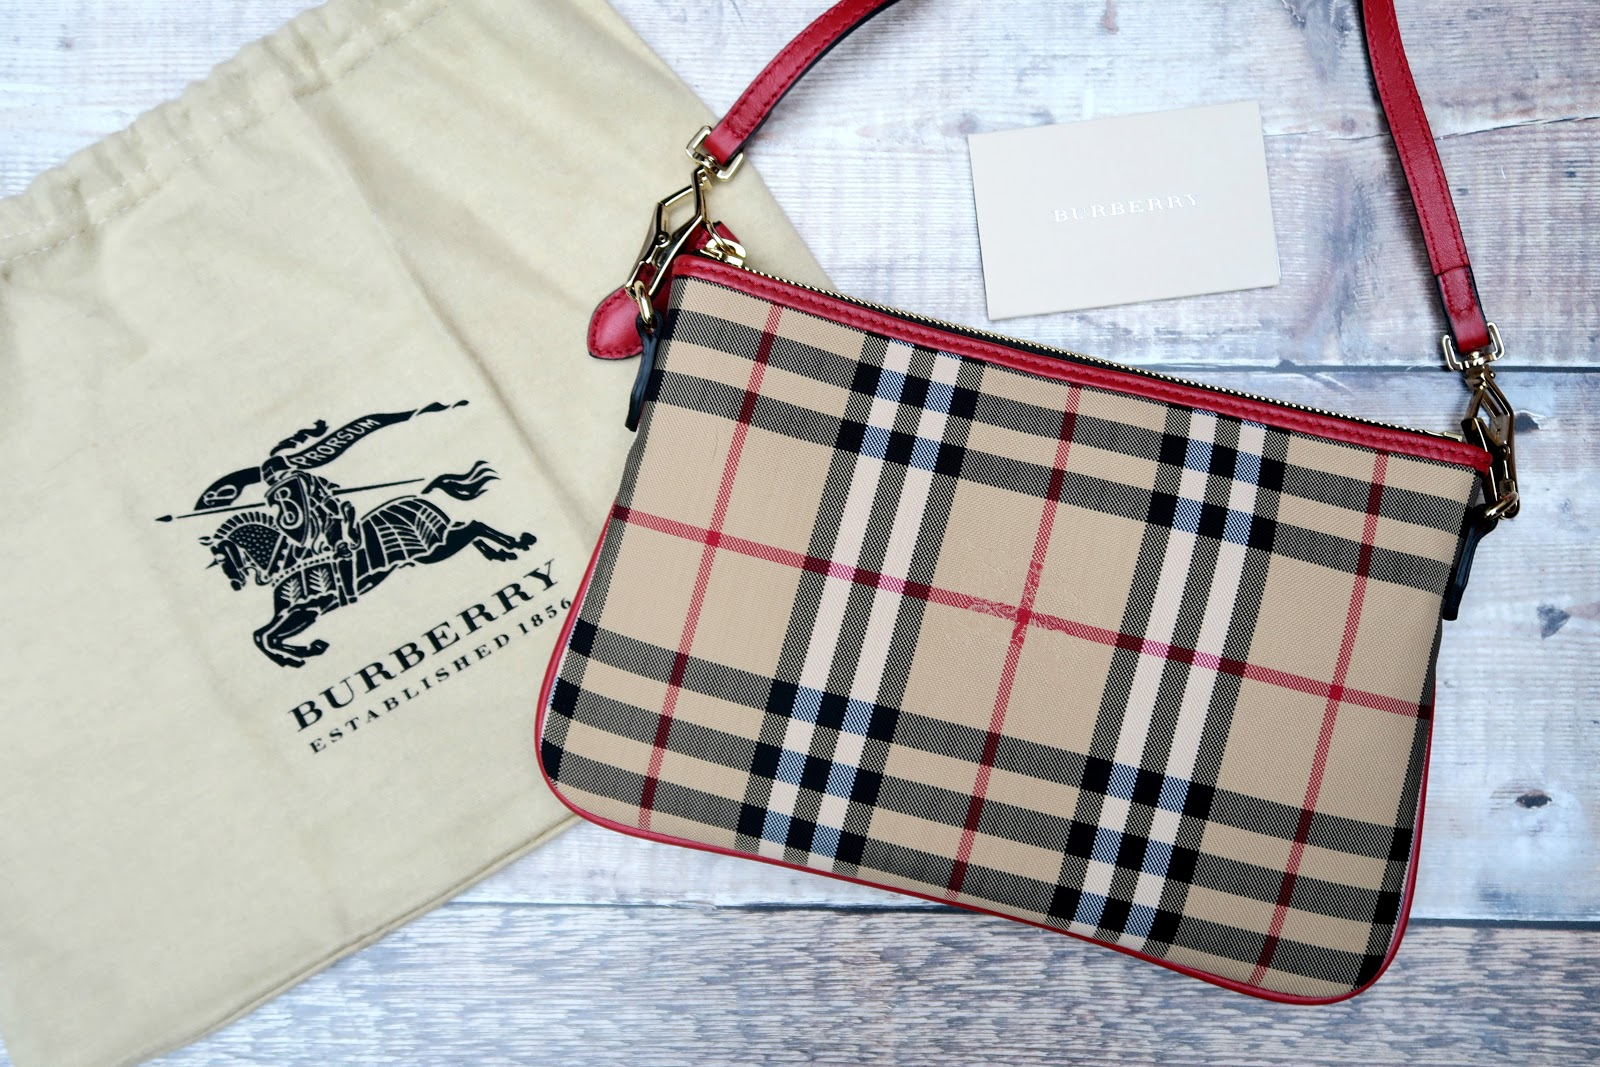 buy online 69a22 cc37d Exactly How Much Money I Saved At The London Burberry Outlet ...